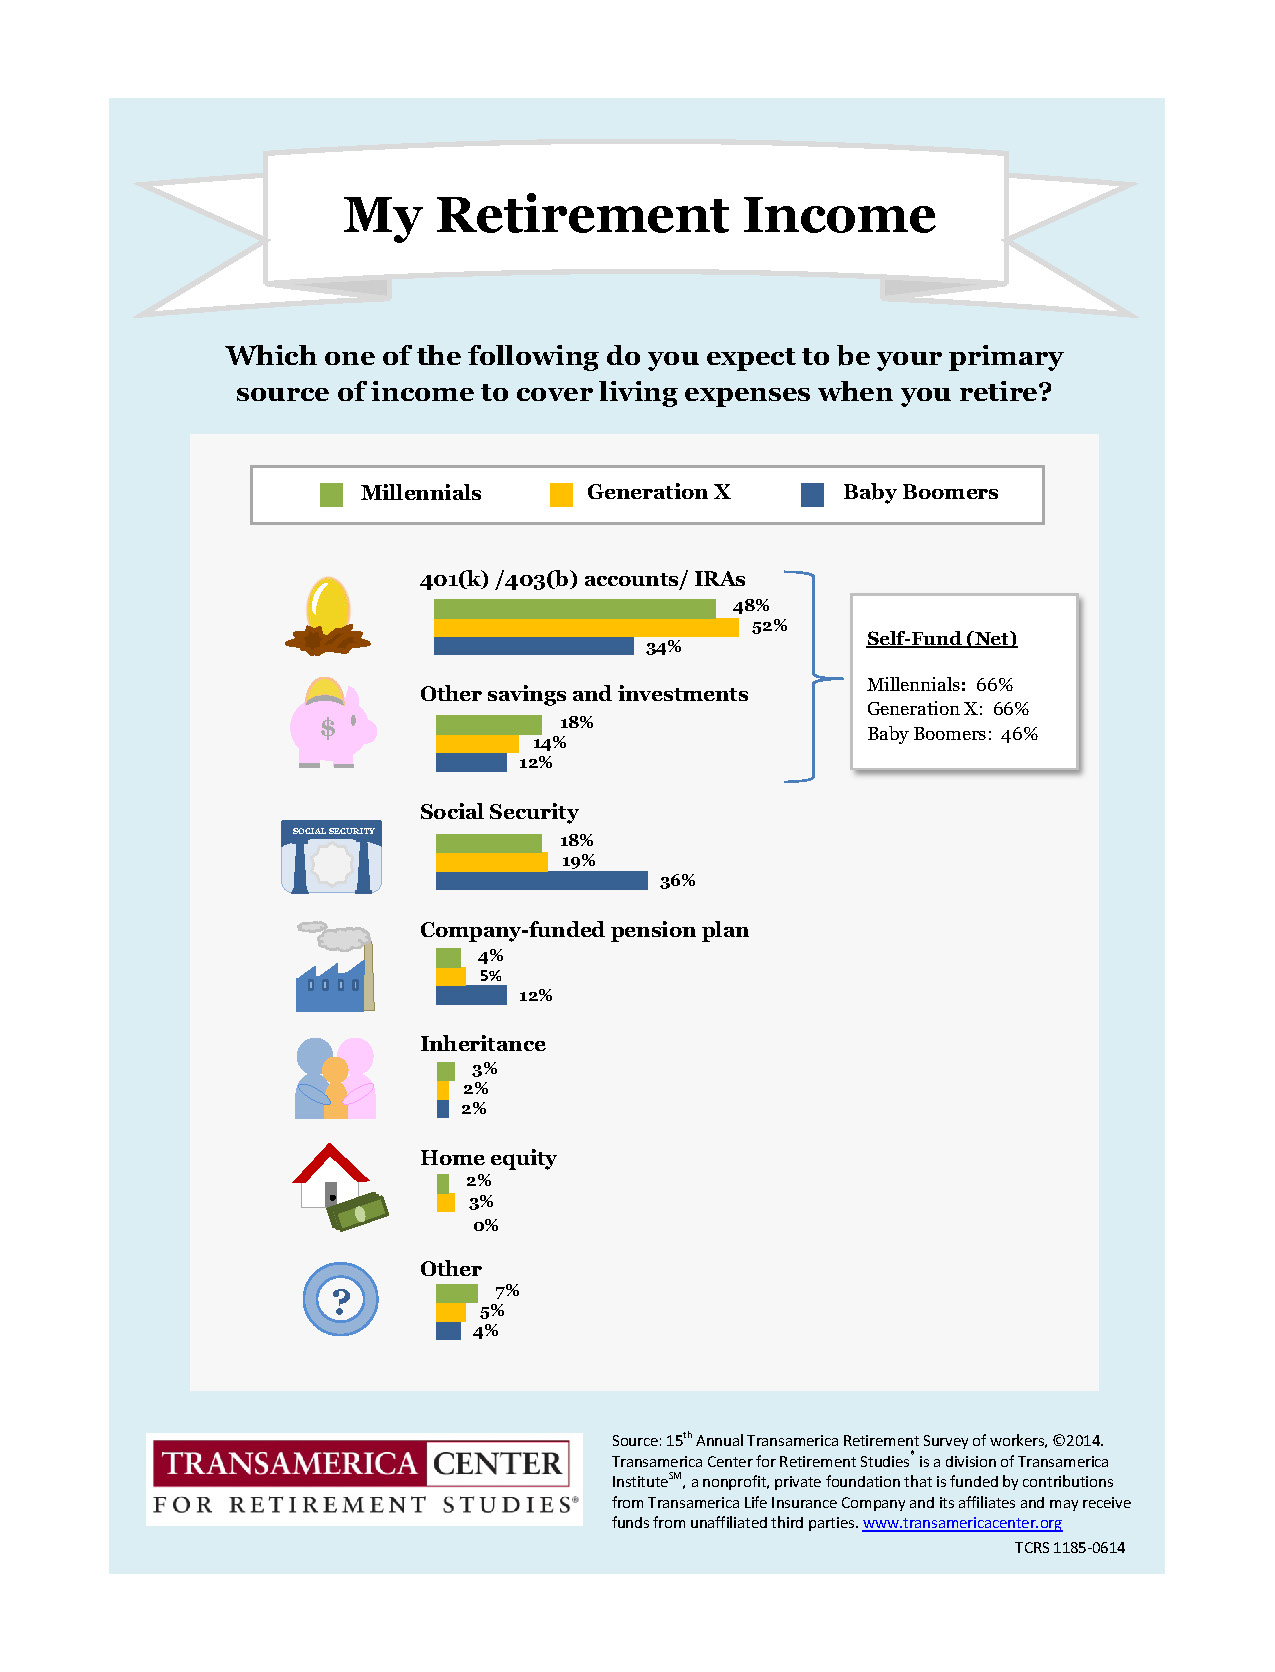 TCRS2013_I_Primary_Source_of_Retirement_Income